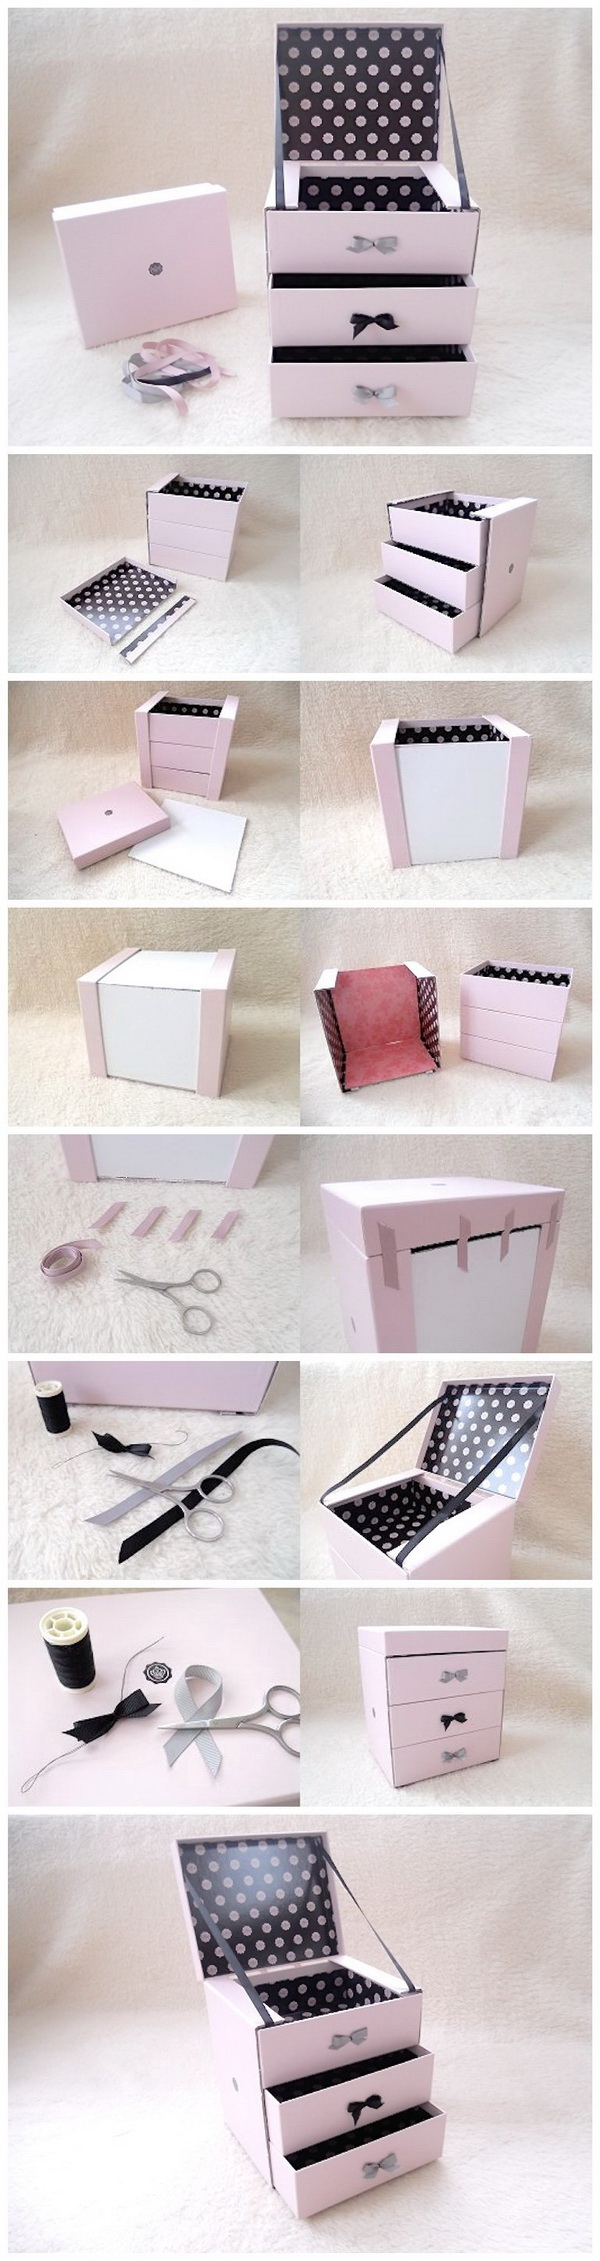 Easy diy projects for teenage girls rooms - Diy Glossybox Jewellery Drawers